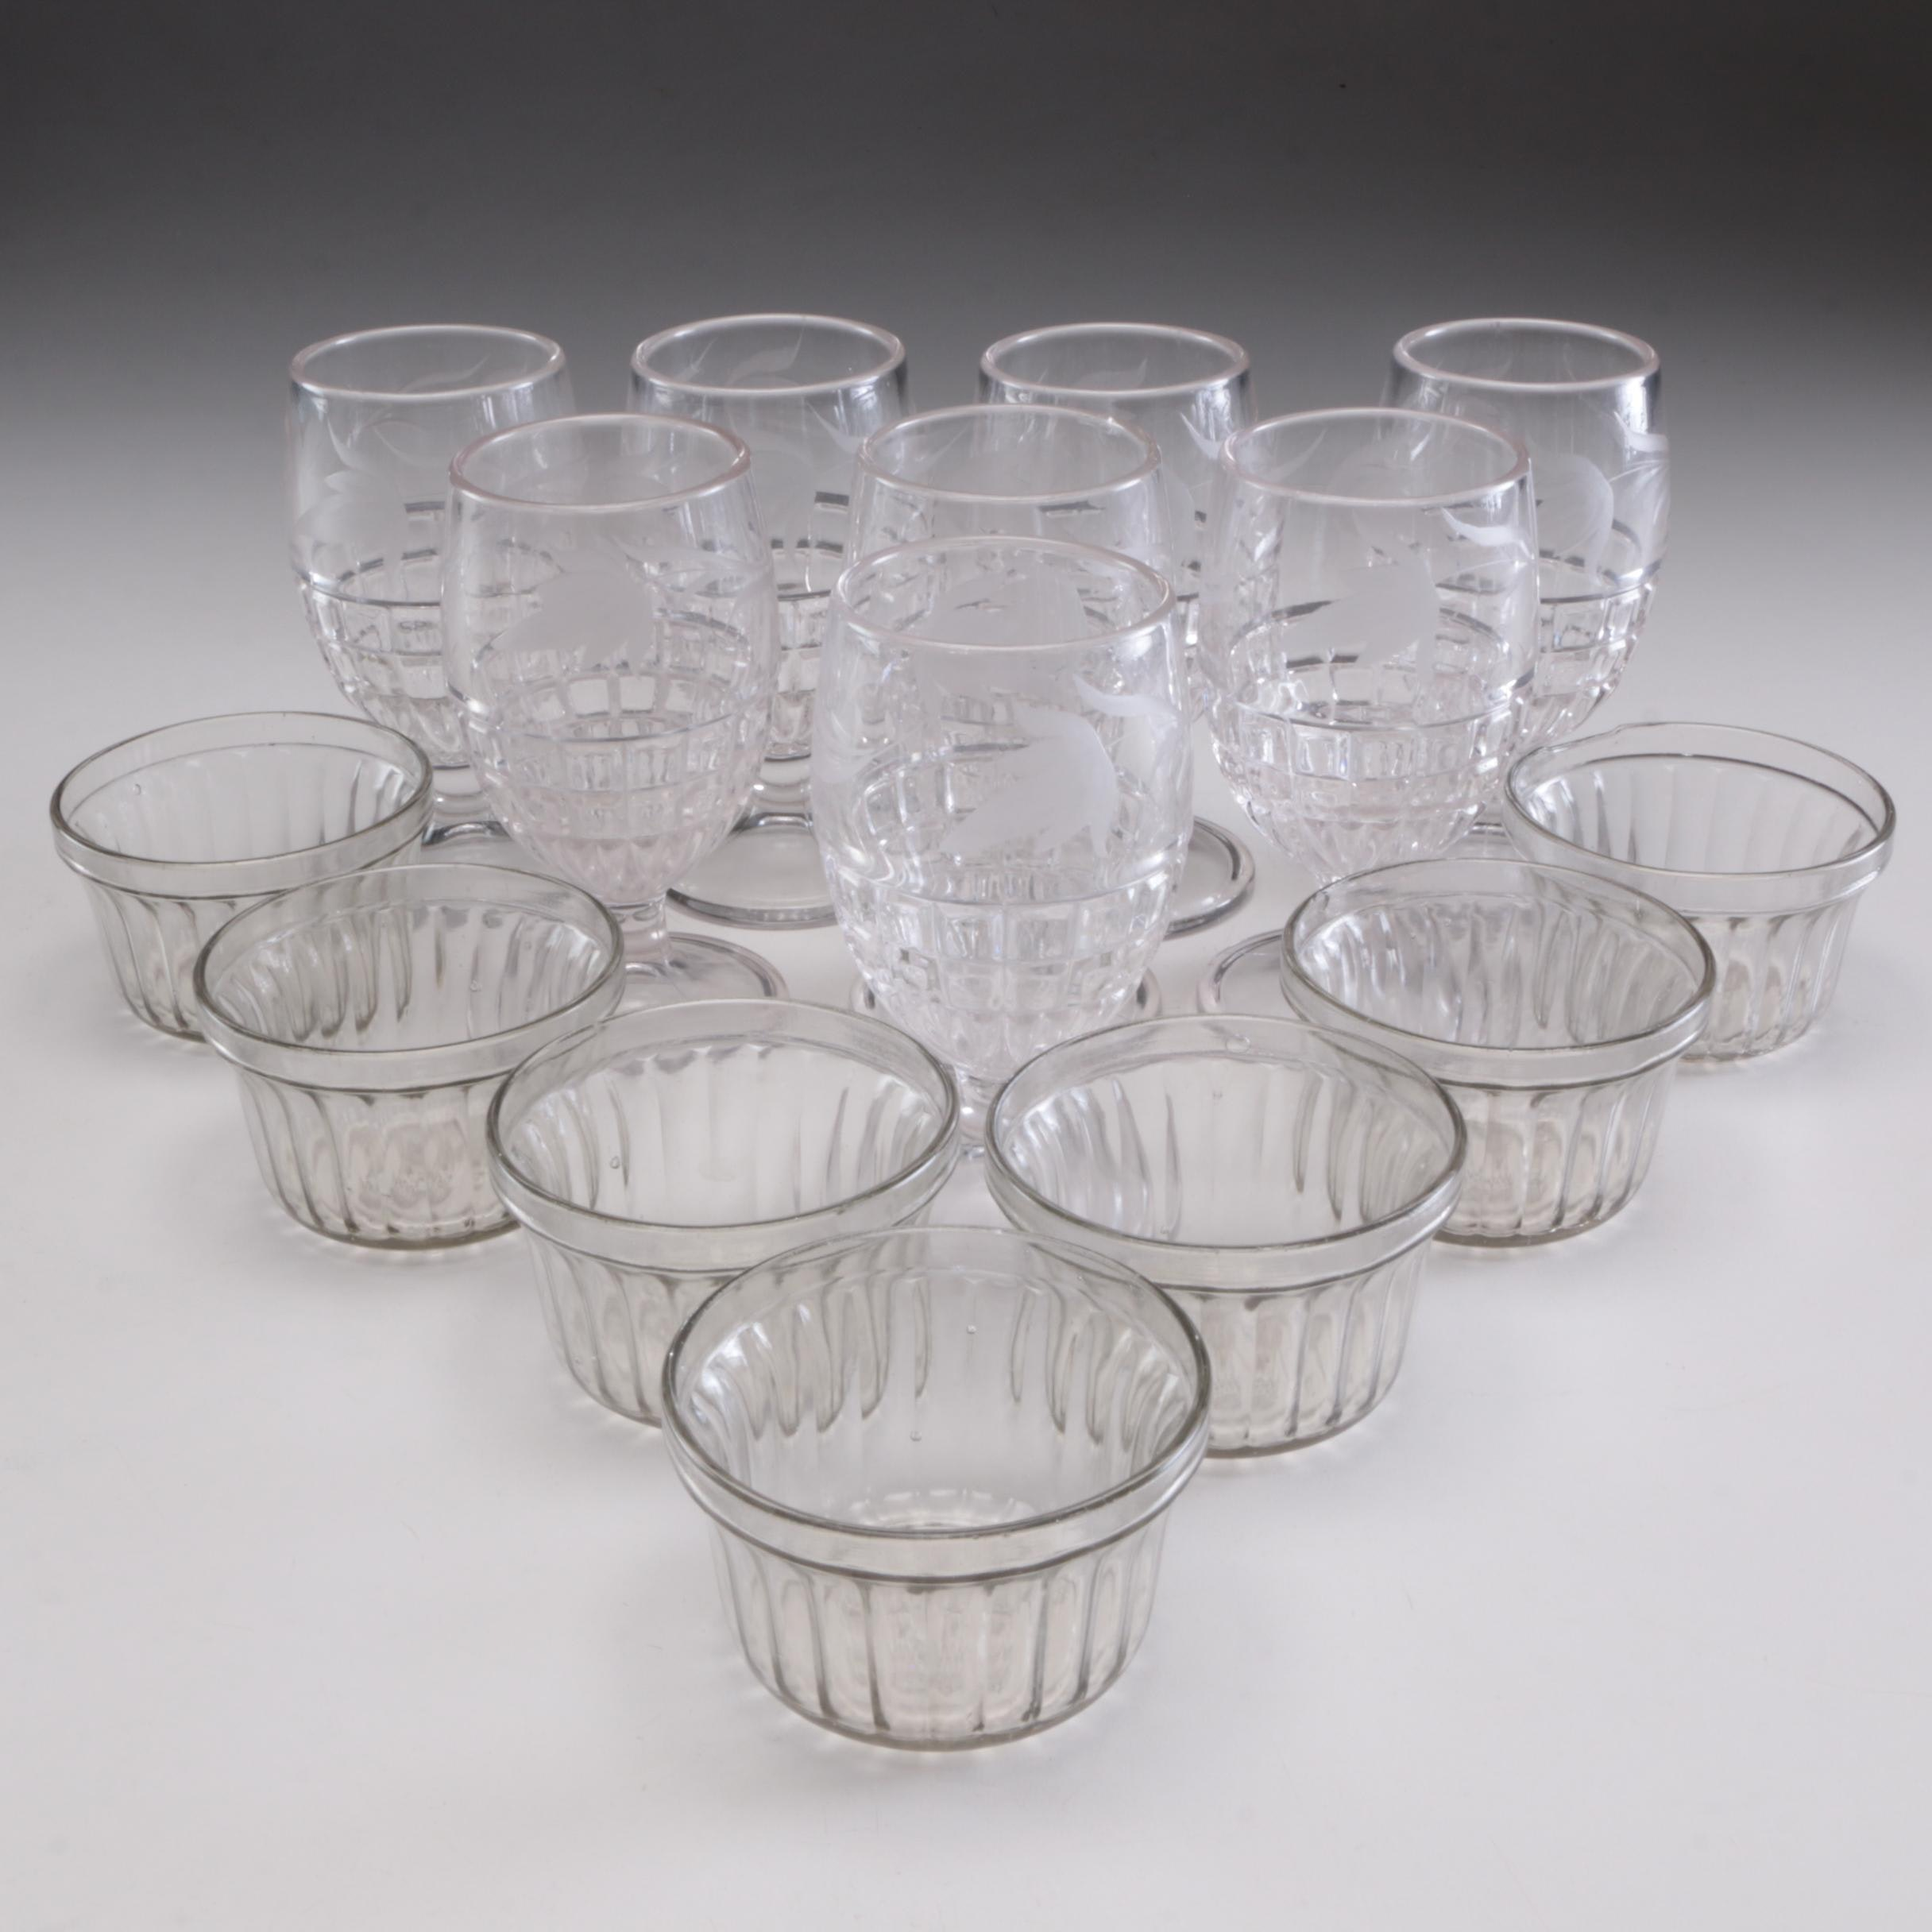 Kerr Glass Co. Jamblers and Etched Glass Water Goblets, Mid-Century